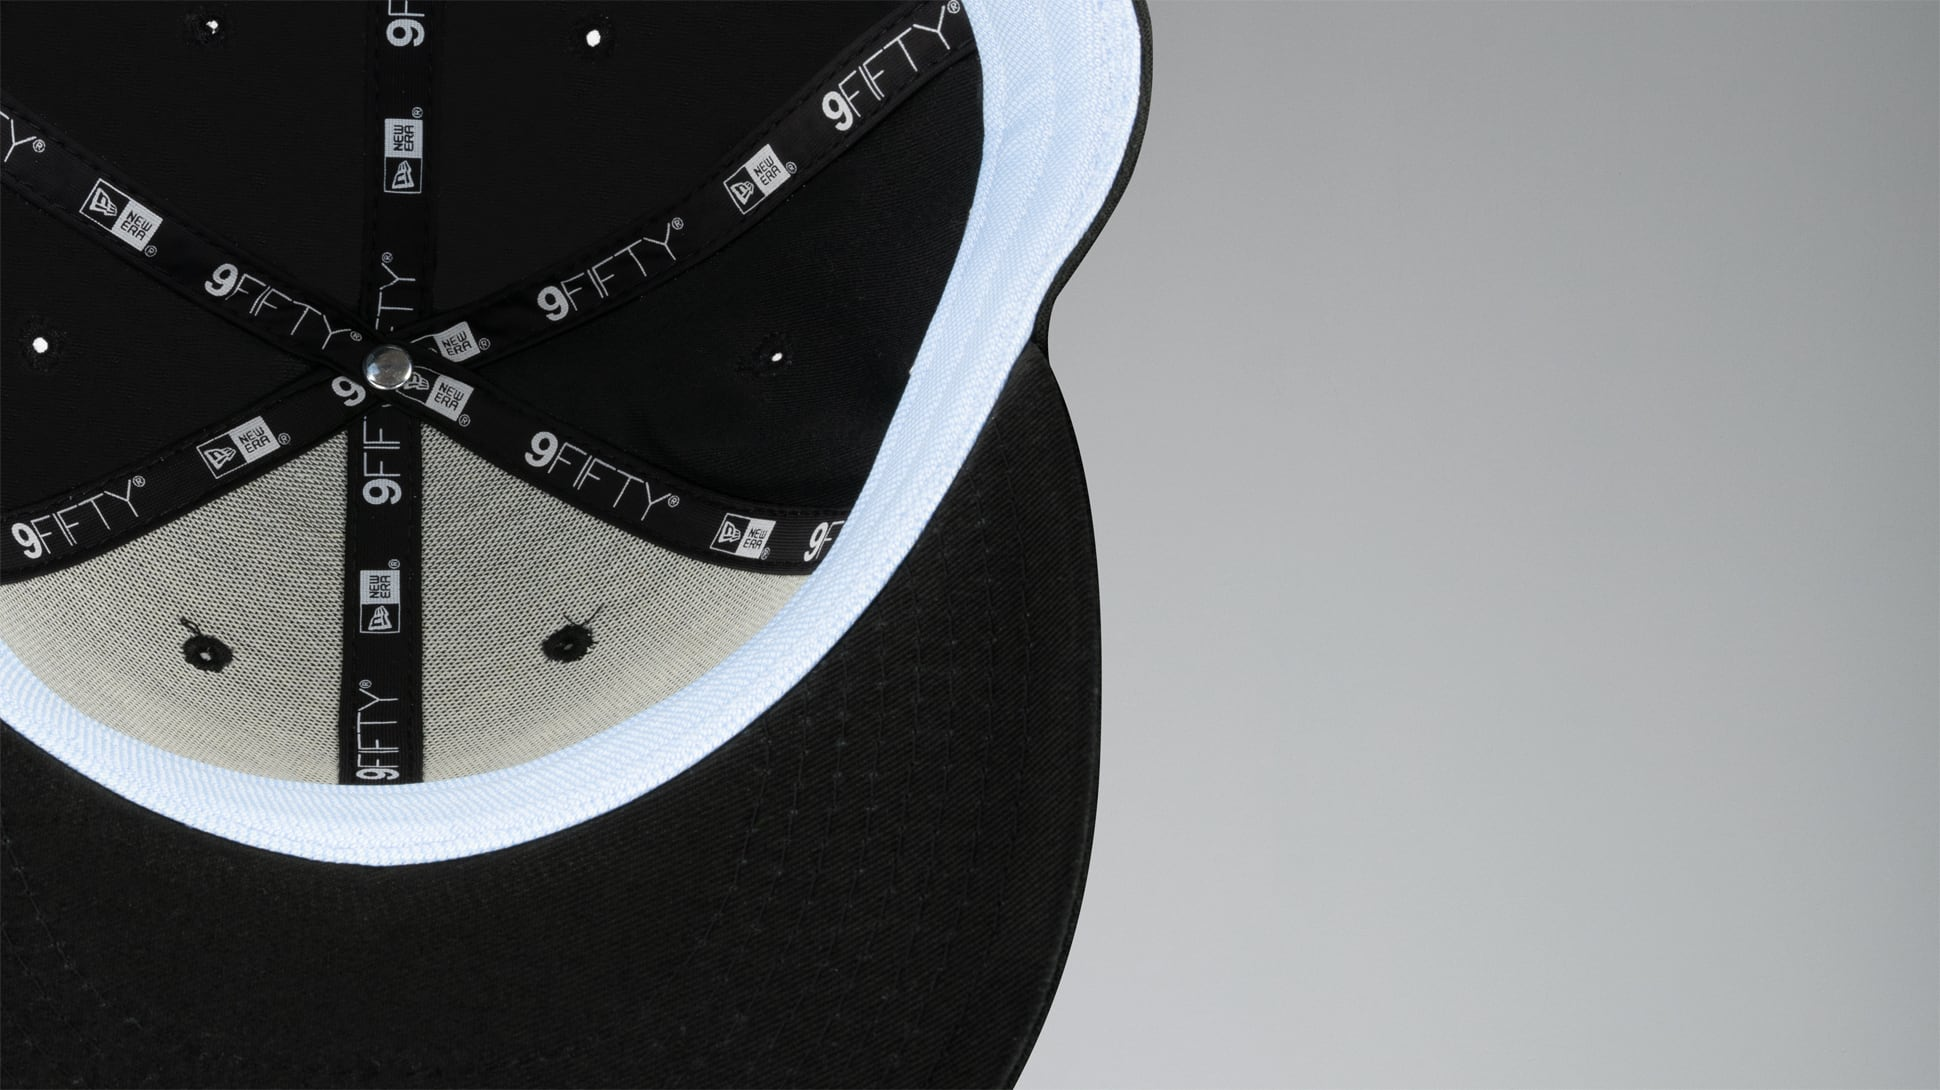 First Responders 9FIFTY Snapback Cap – Medical Service Image 5